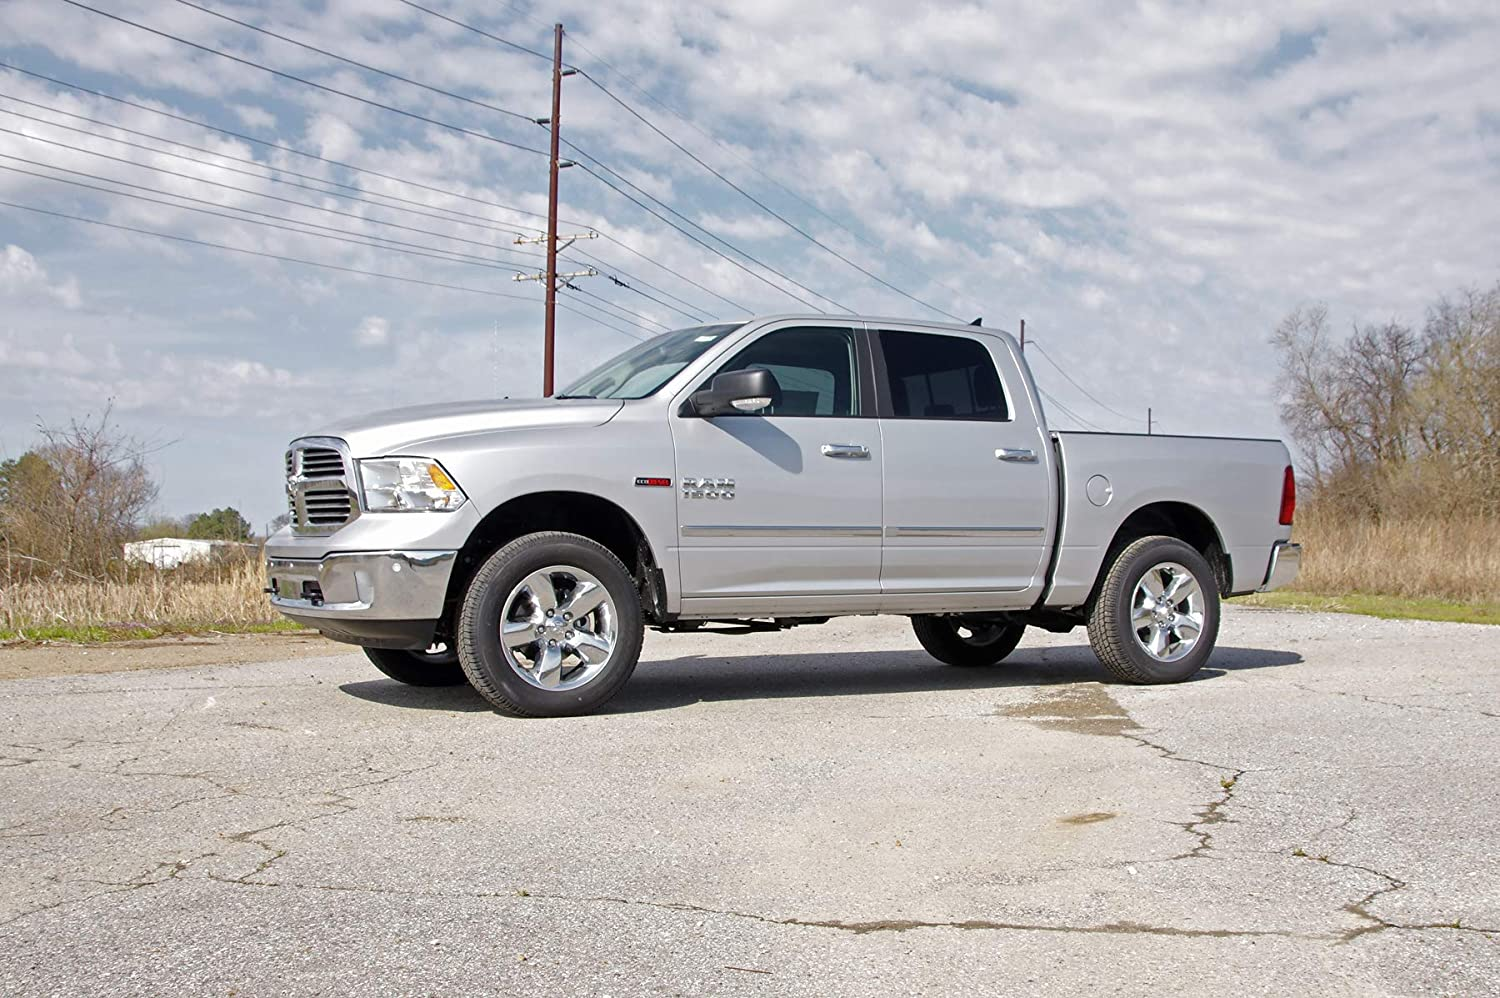 2012-2018 Ram Truck 1500 4WD fits N3 Loaded Struts Rough Country 2 Lift Kit 358.23 Suspension System